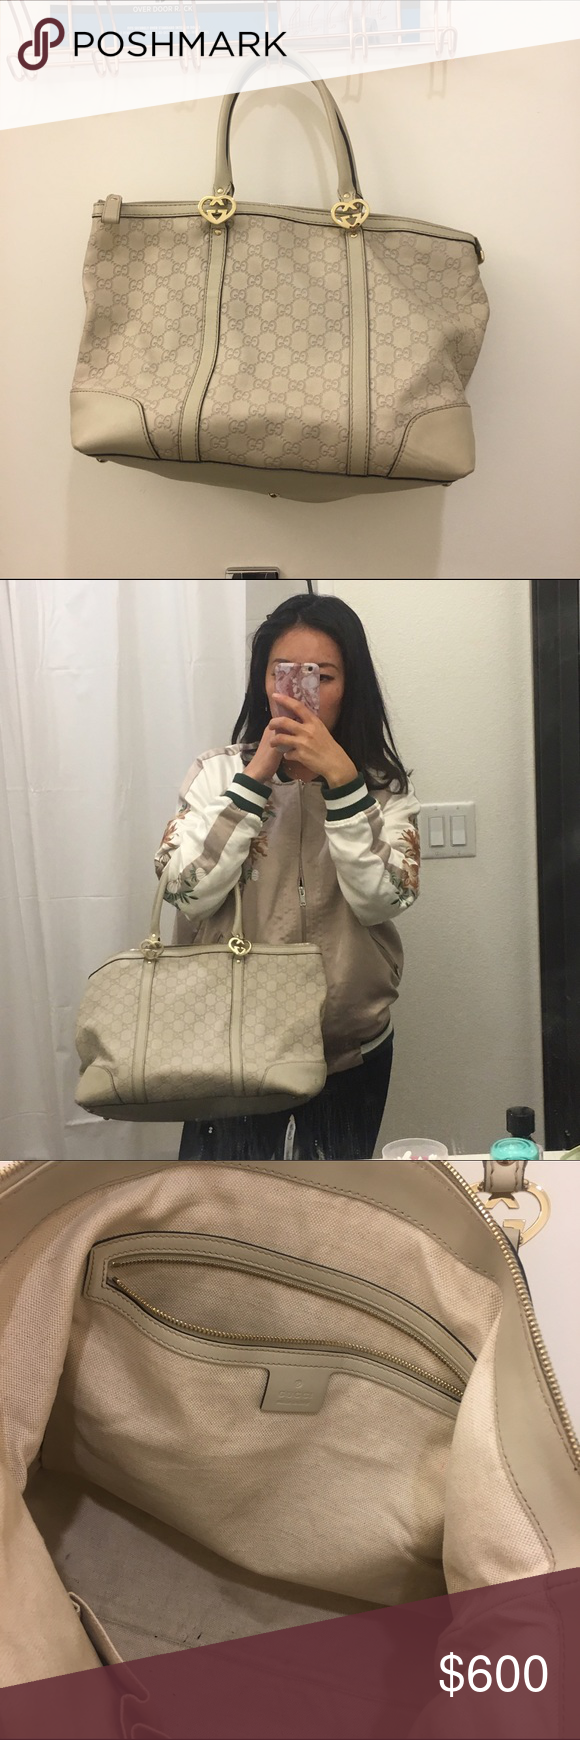 Authentic Gucci bag Barely used Gucci Bags